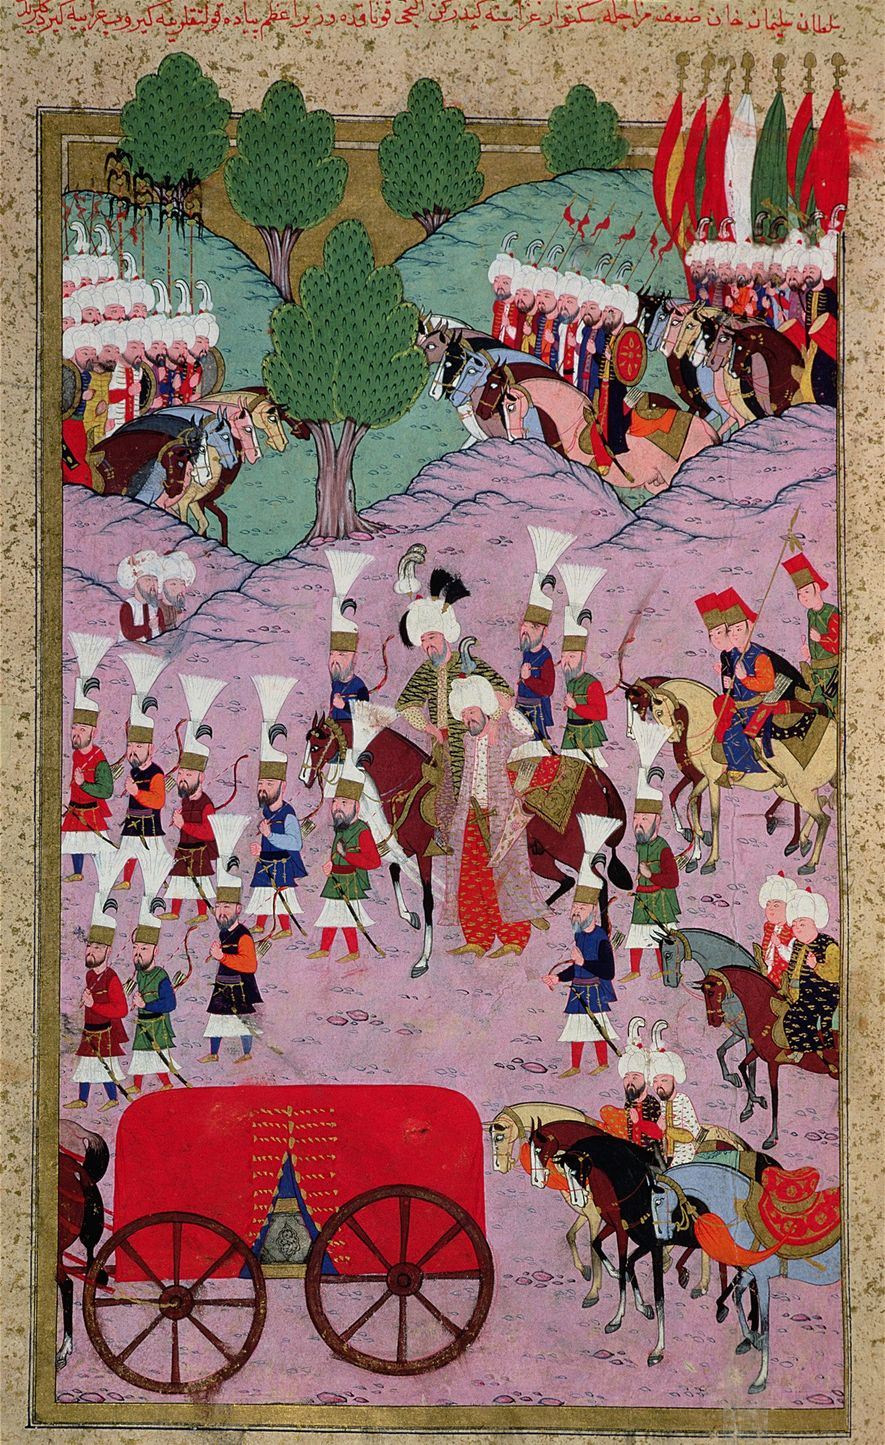 This 16th-century miniature painting depicts the army of Süleiman the Magnificent marching into Europe.